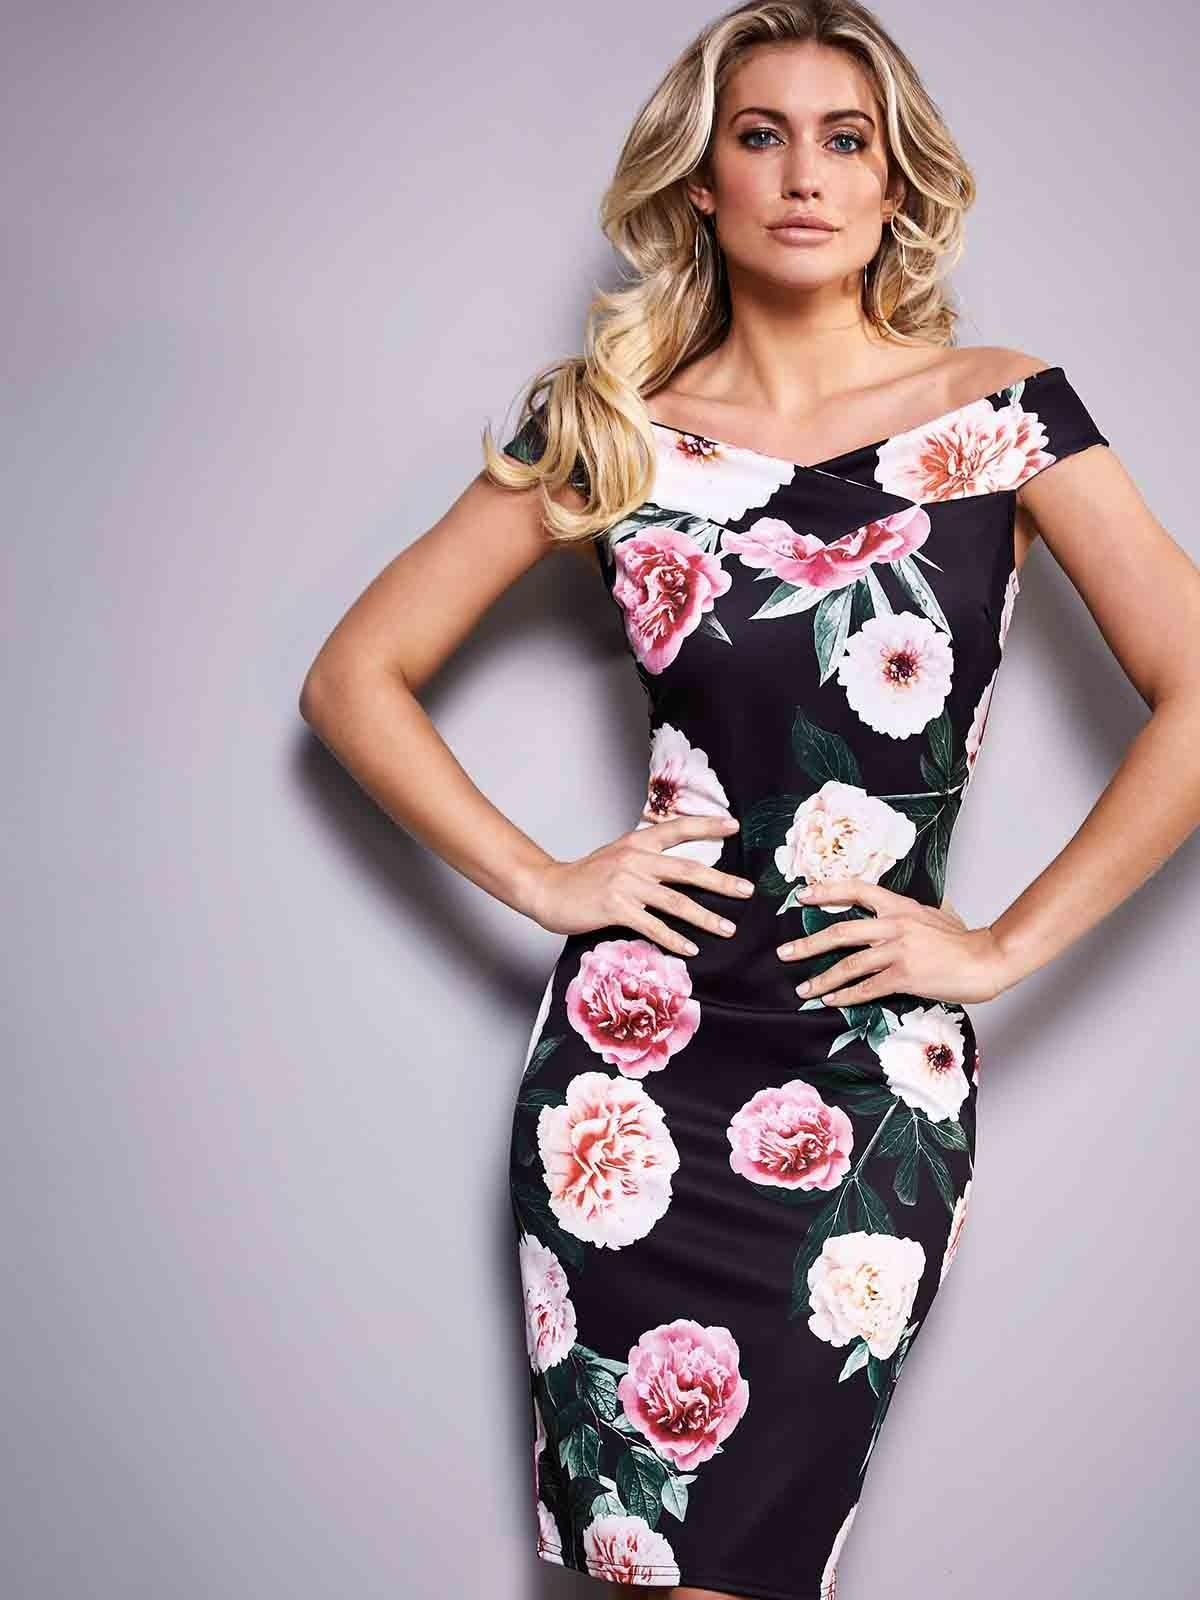 Stand out in this best-selling dress, with bold florals and a chic, bardot cut.